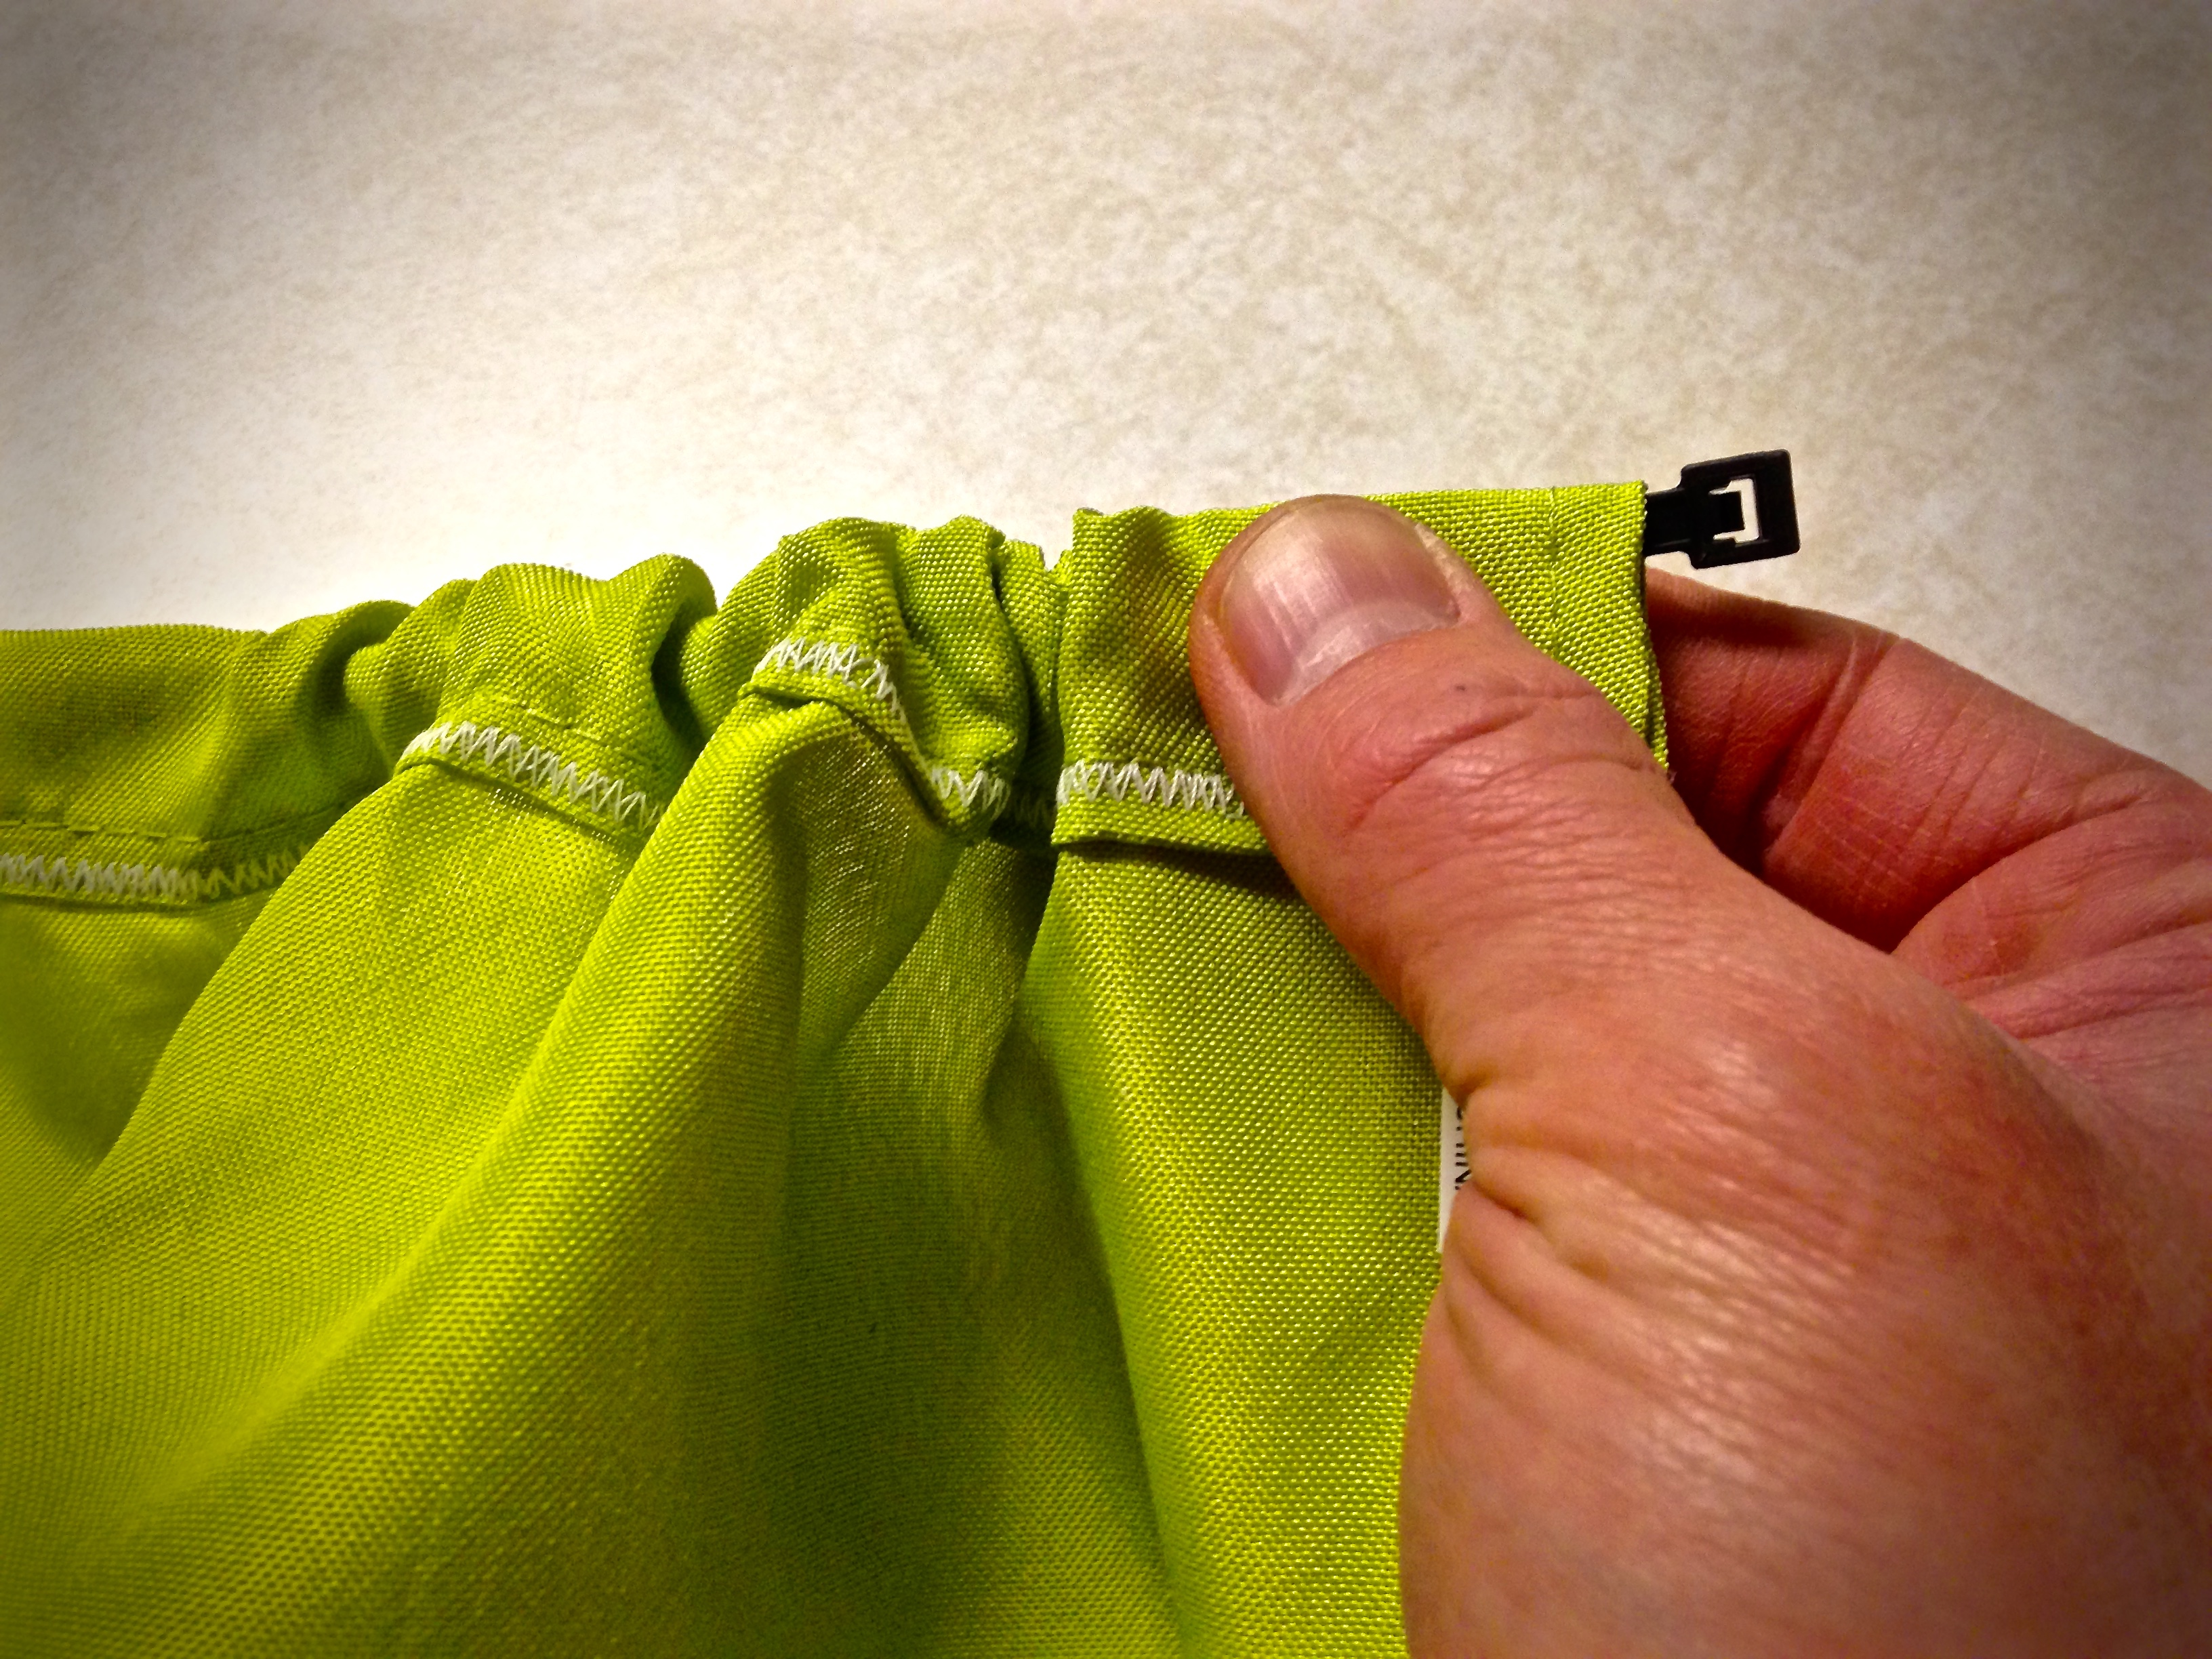 Hold ziptie at its neck and gather fabric until end of ziptie pops out on other side